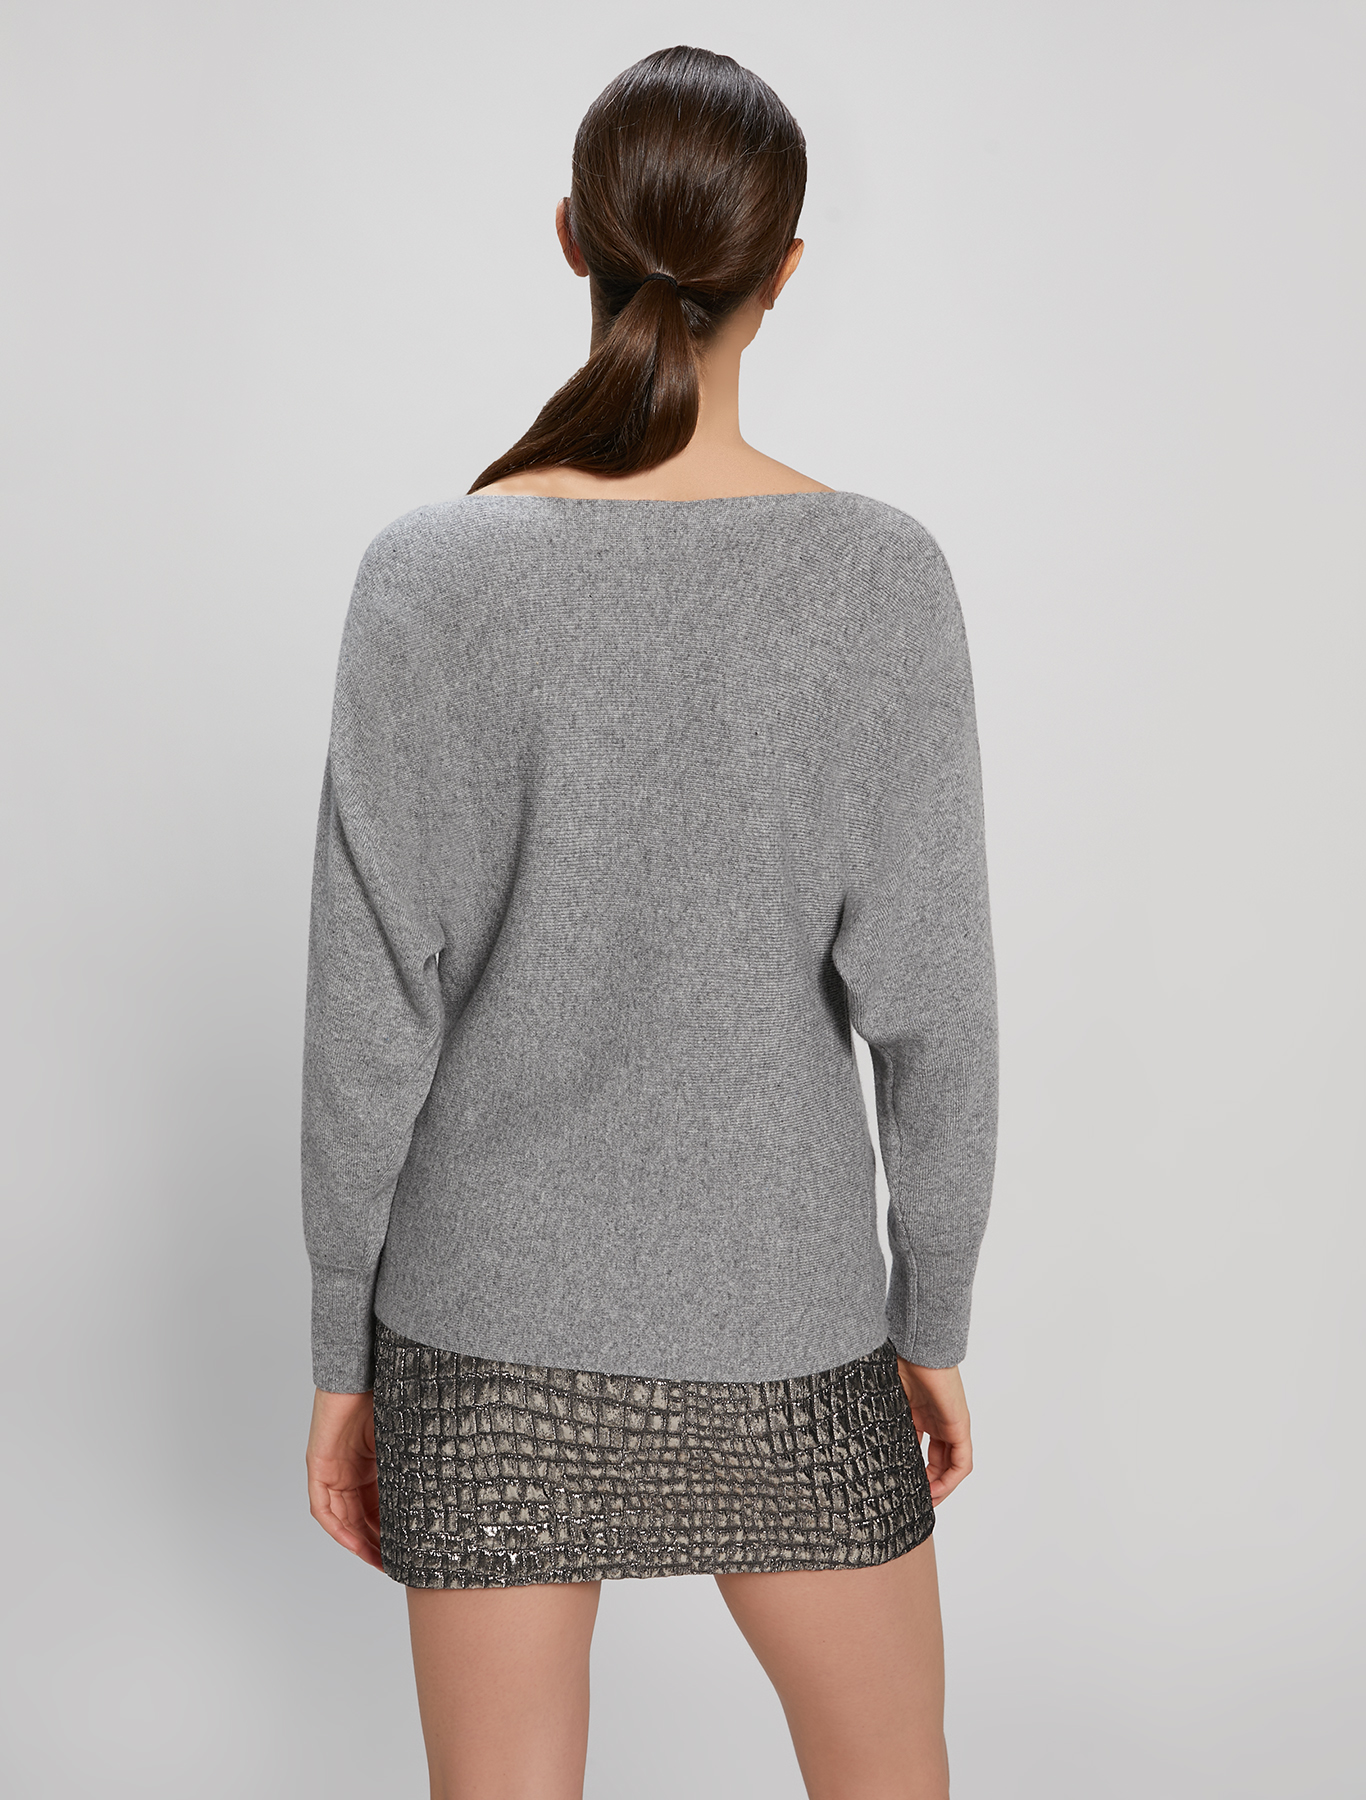 Jumper with kimono sleeves - medium grey - pennyblack